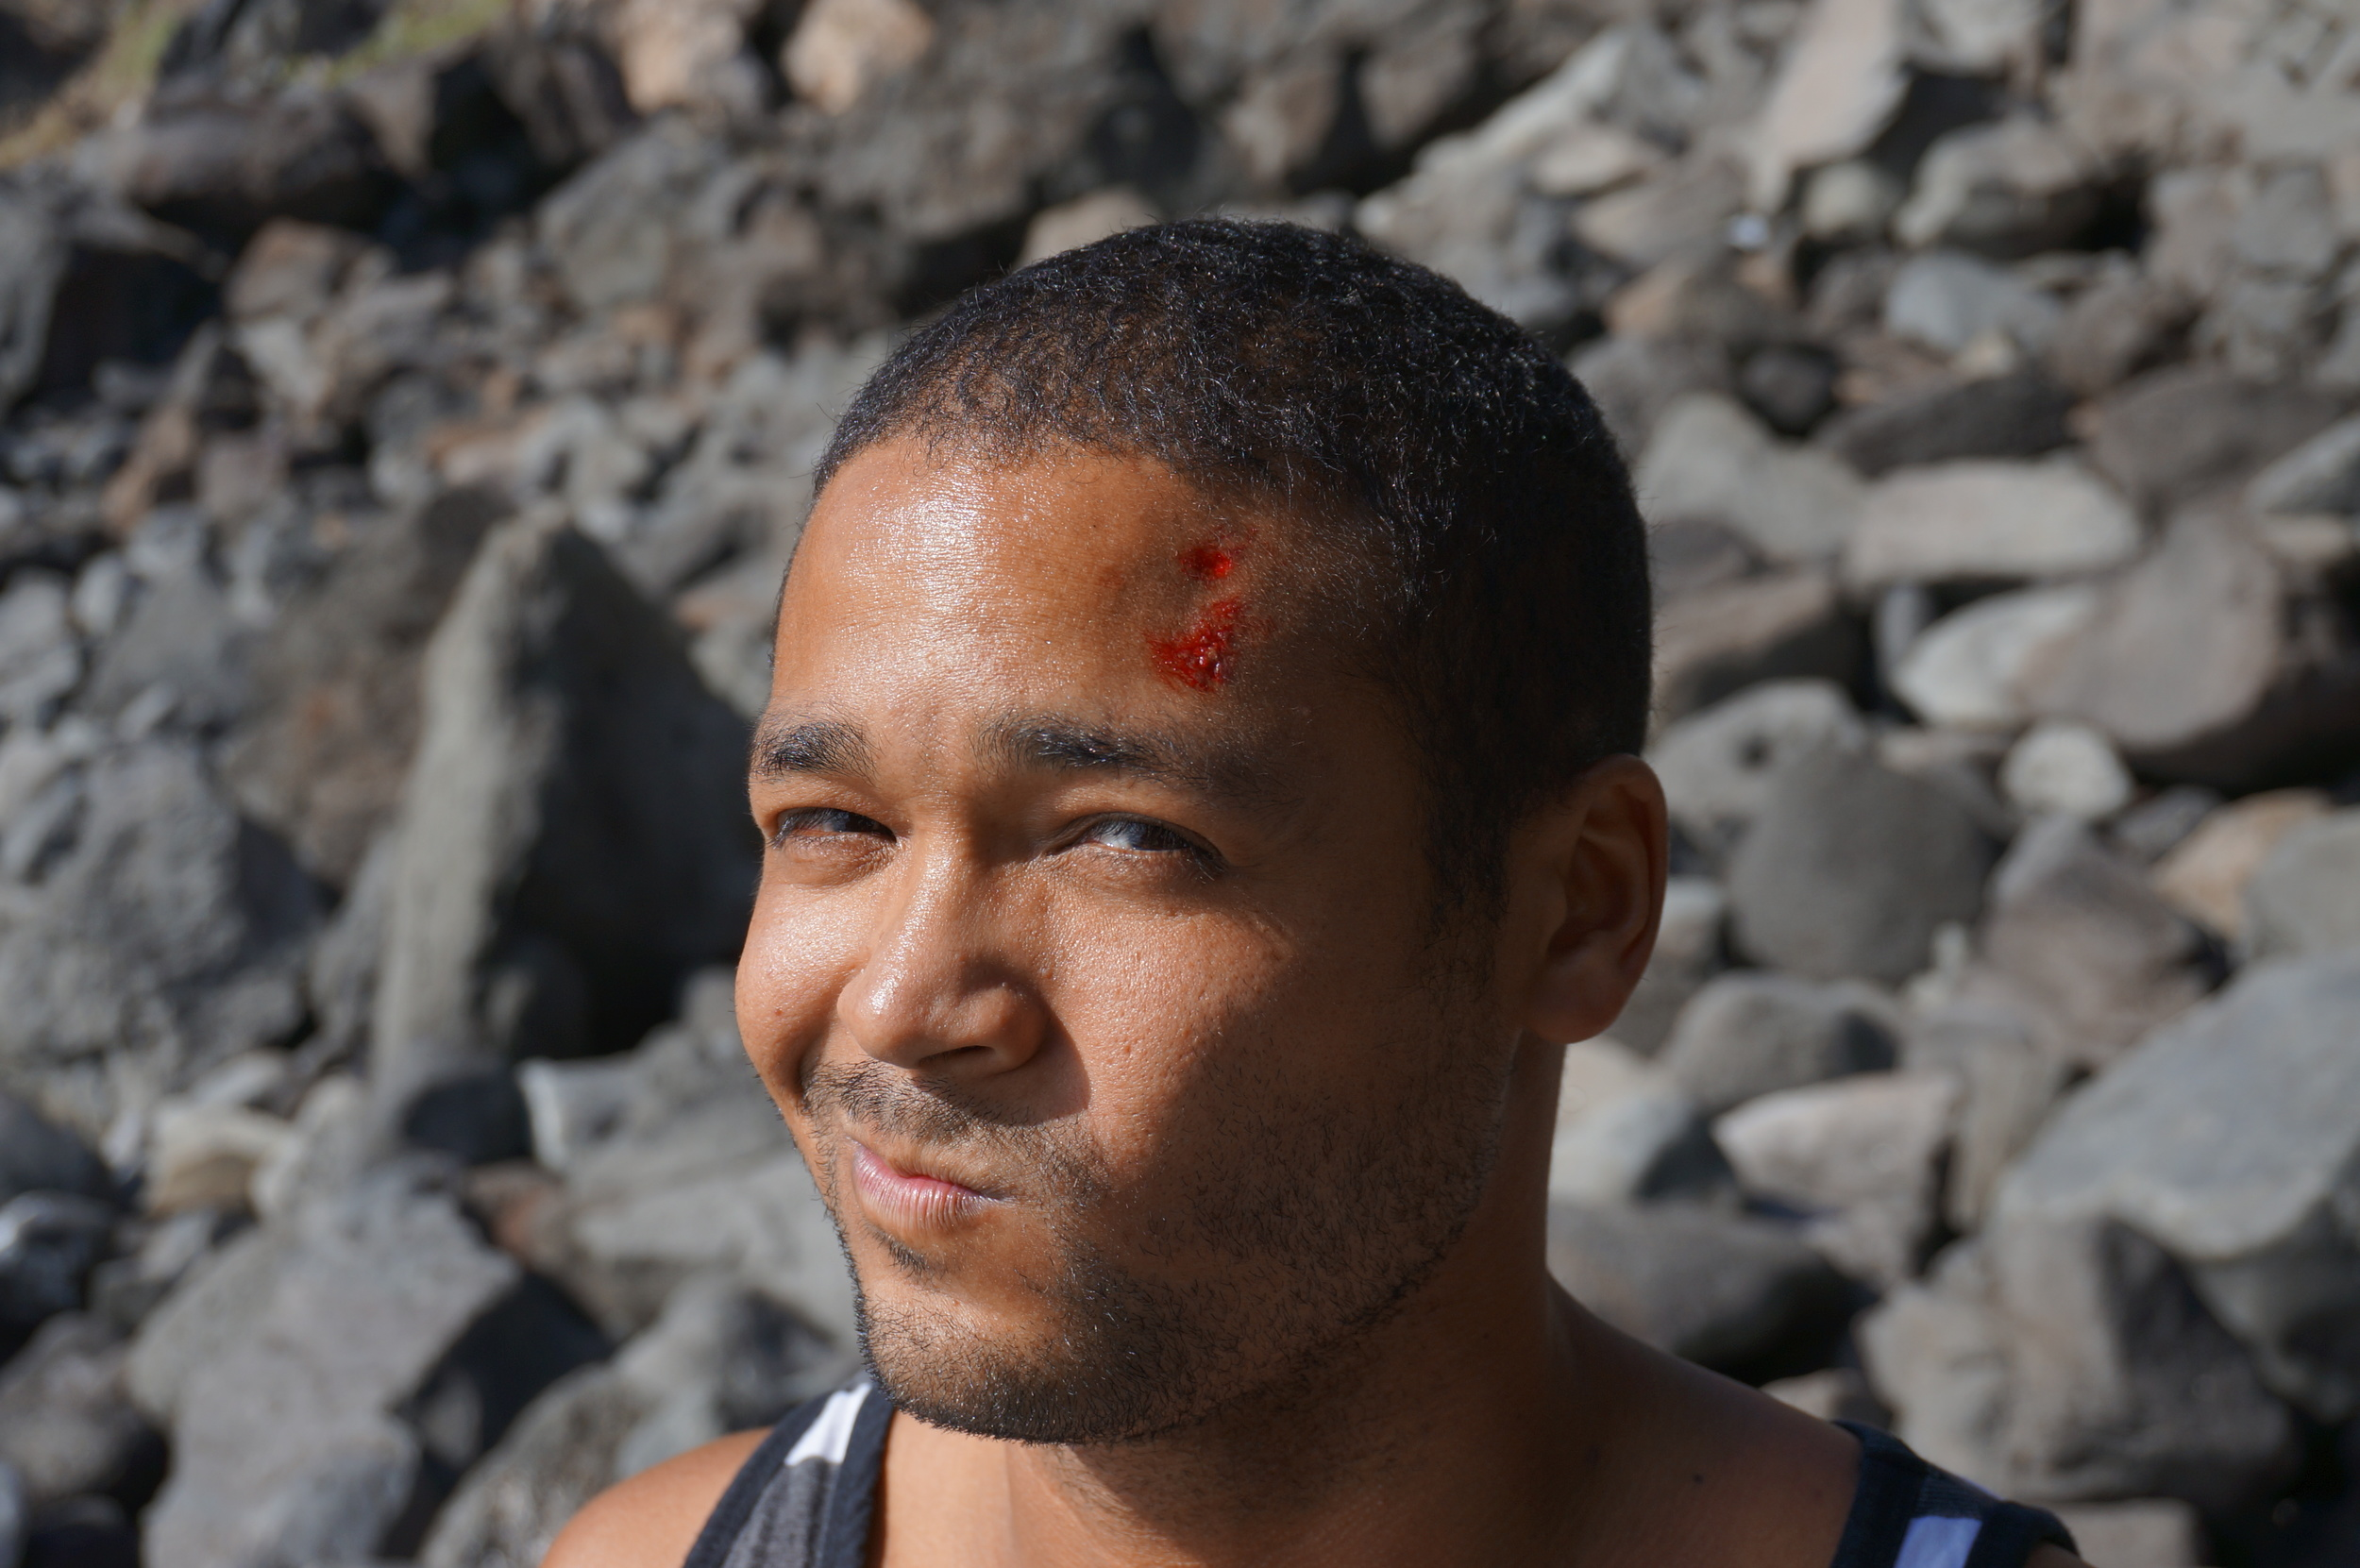 He gave it hell, headbutting the rock during one of his attempts. Hell yeah, brother.